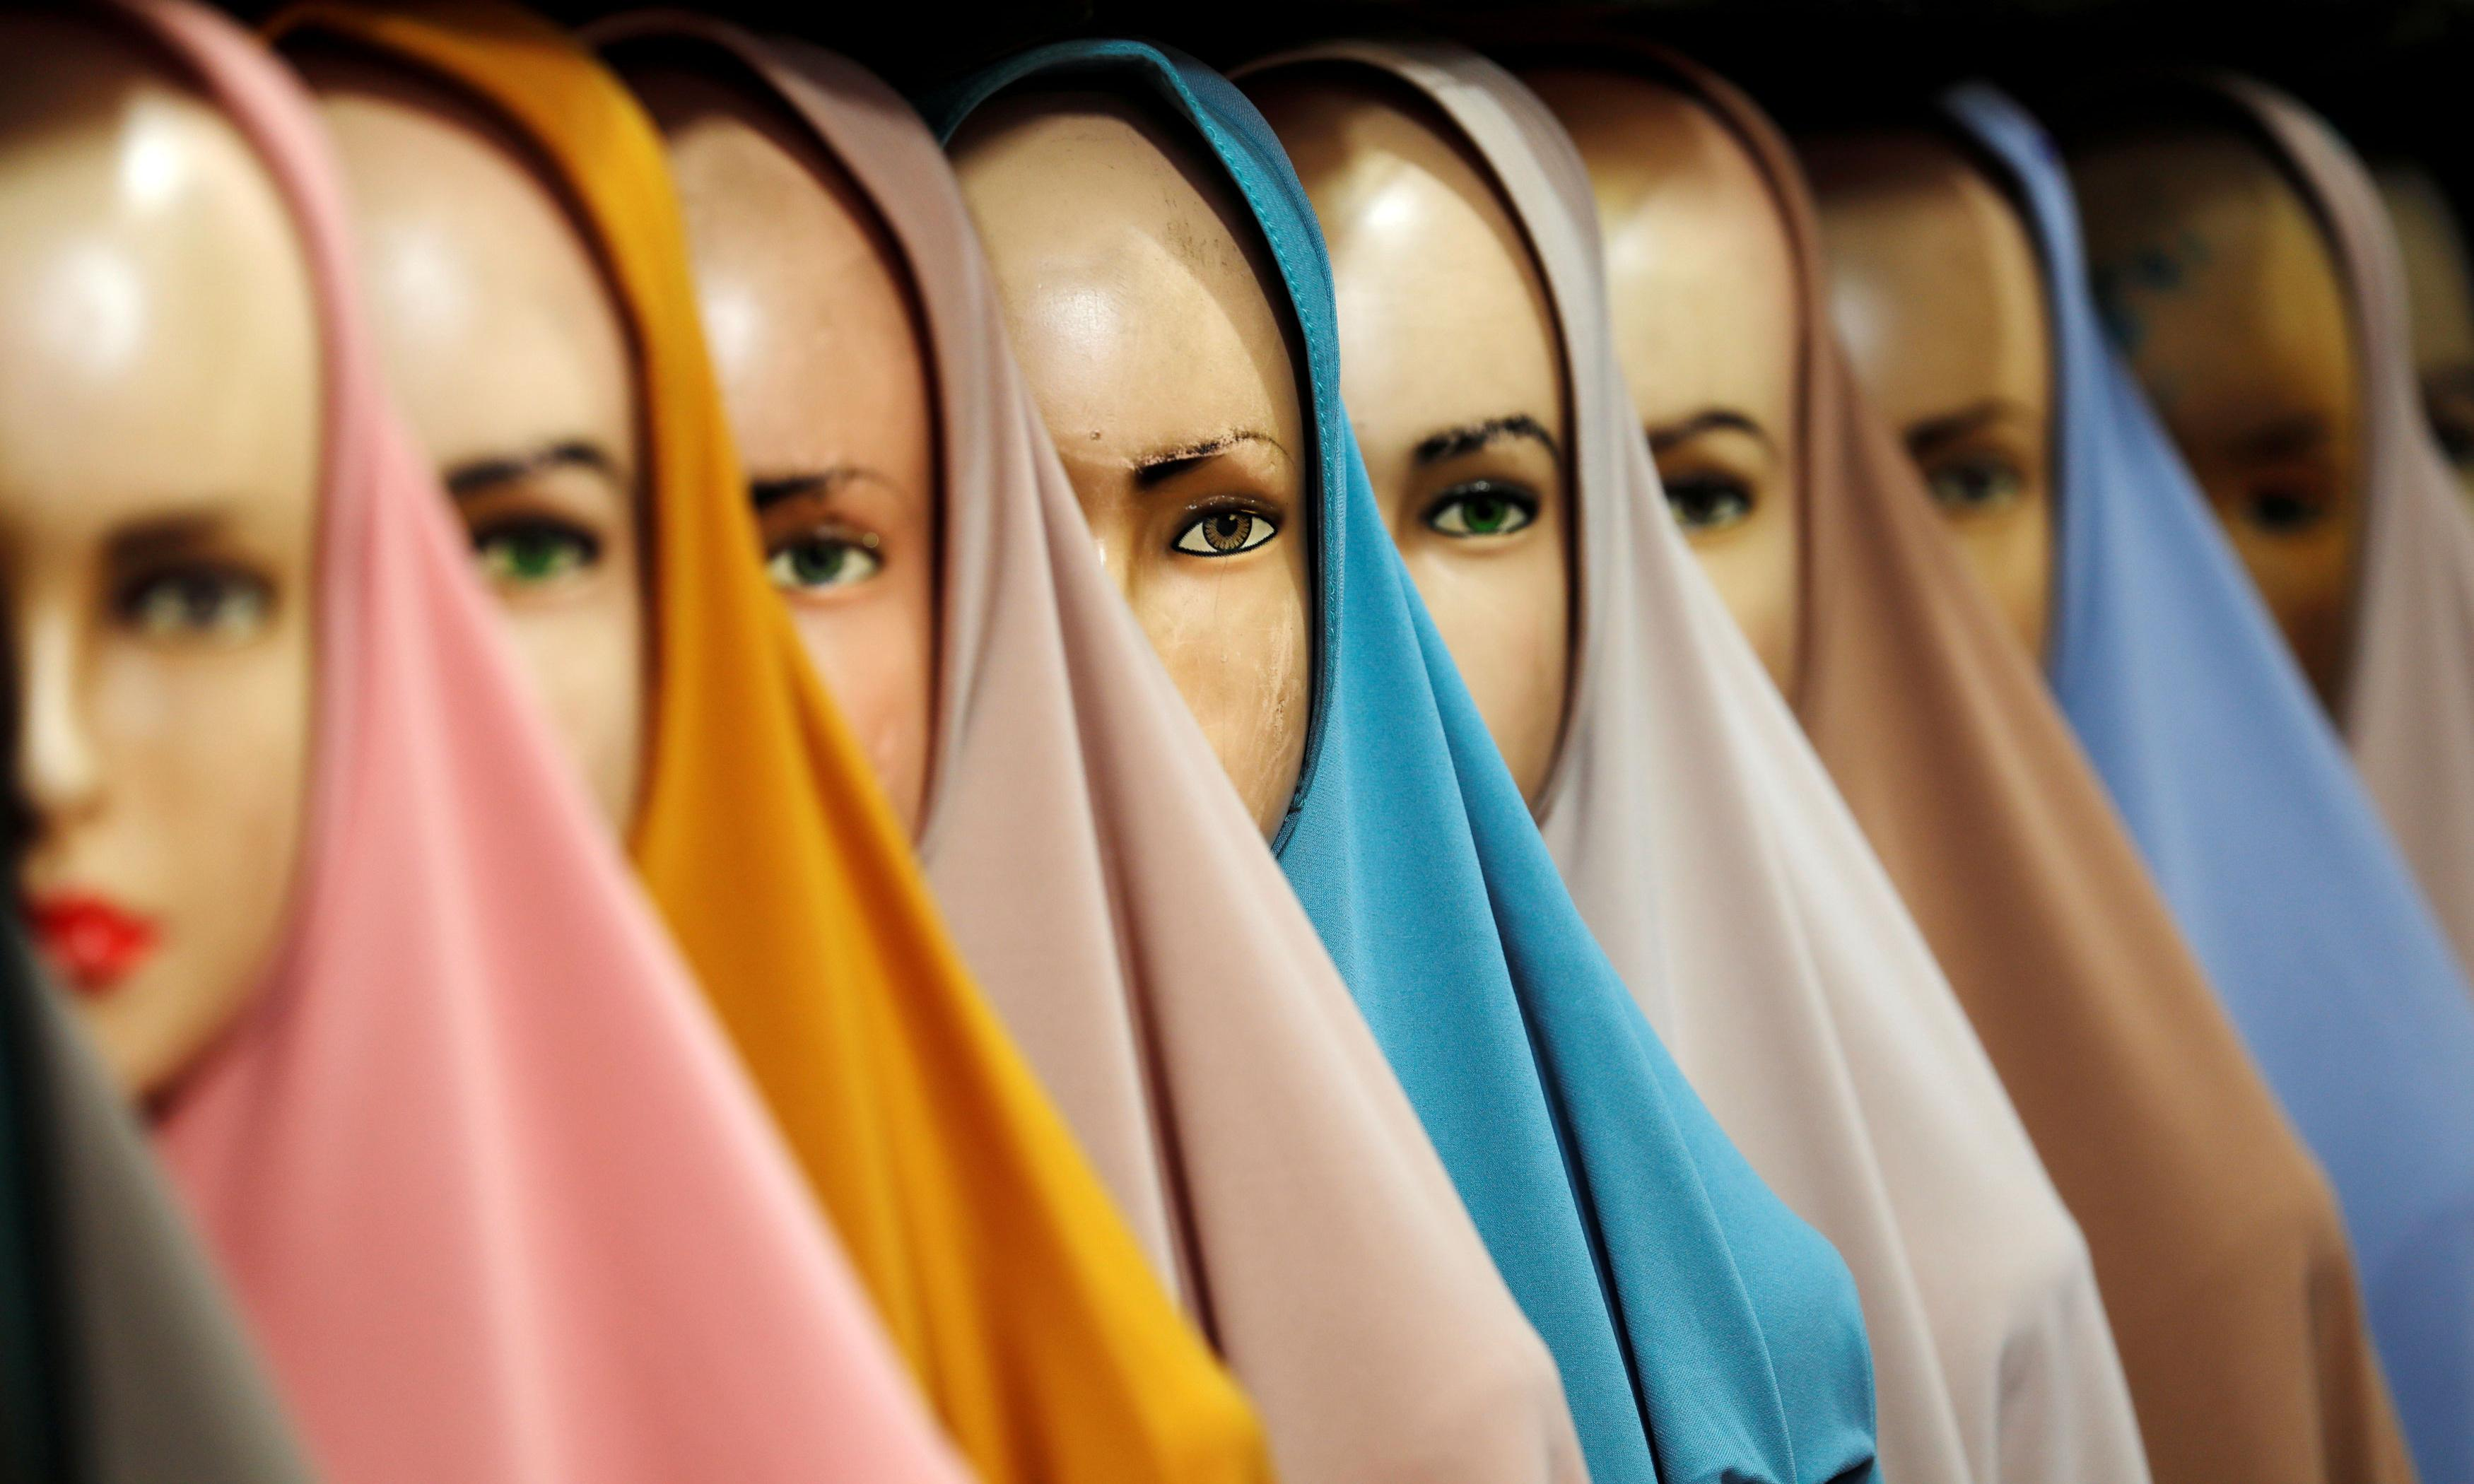 Woman allegedly forced to remove hijab for mugshot gets $120,000 in settlement